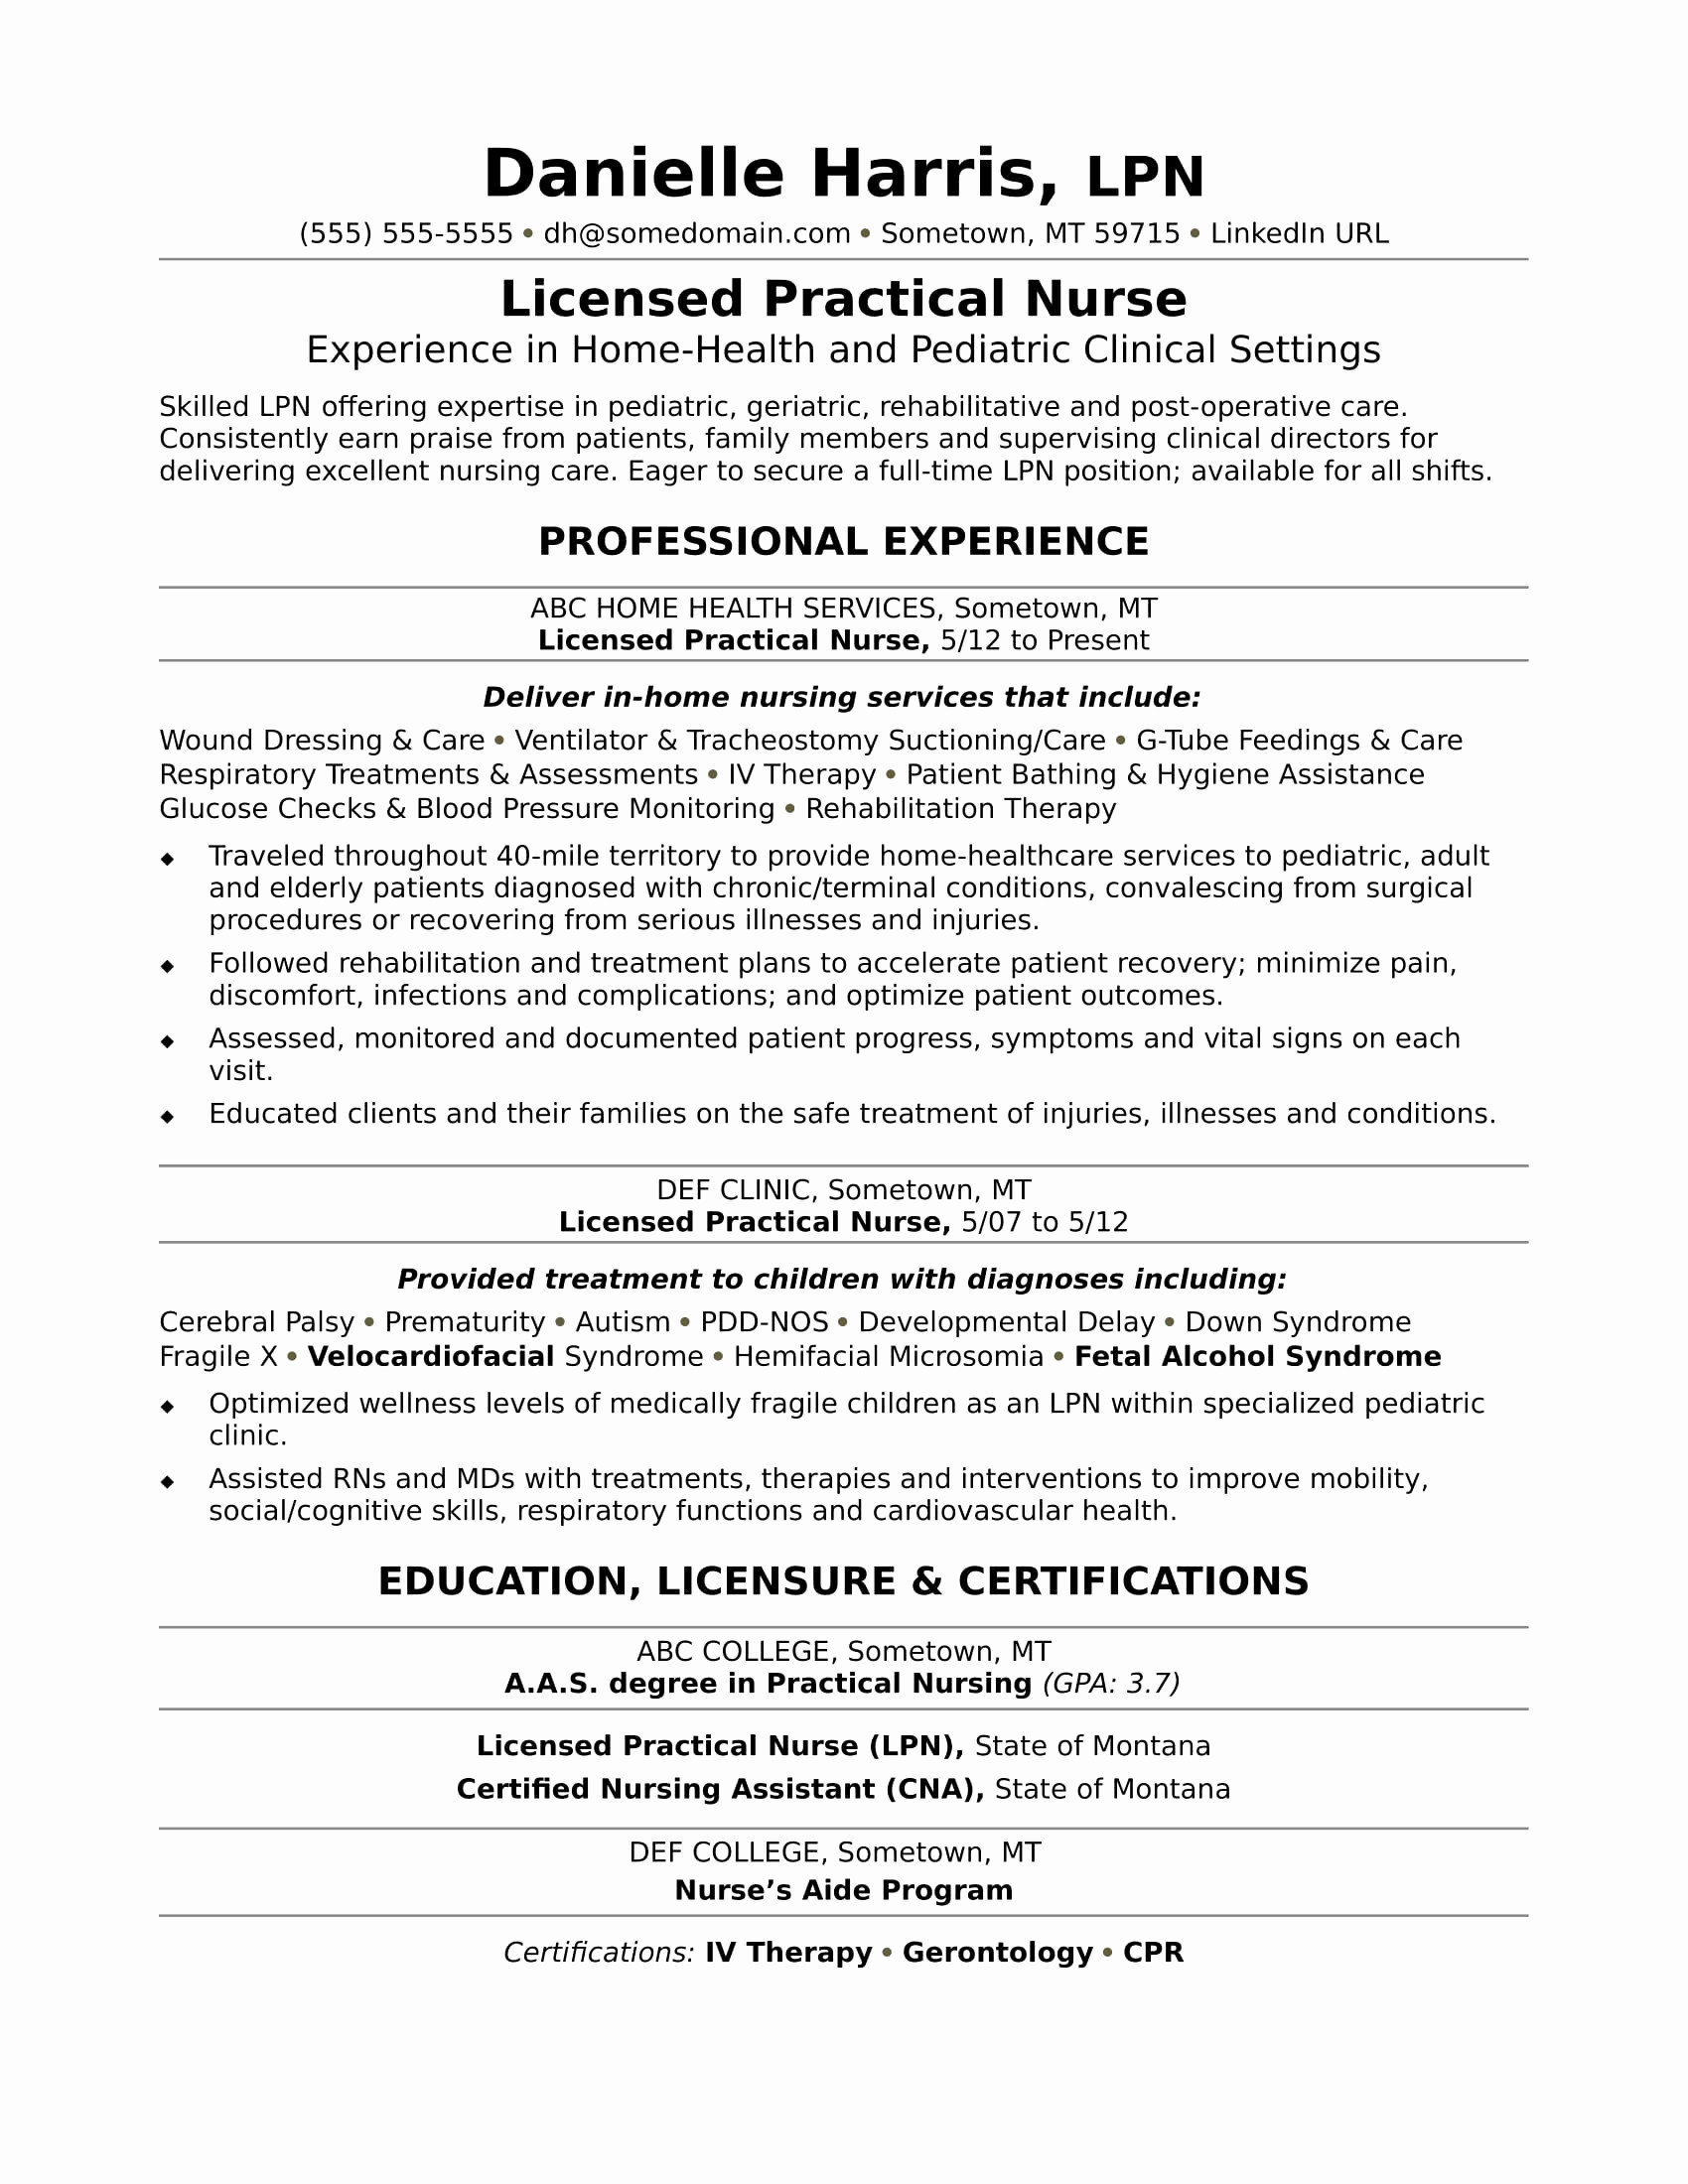 massage therapy resume template Collection-Resume for Massage therapy – Massage therapy Resume Template New Elegant New Nurse Resume Awesome 13-c